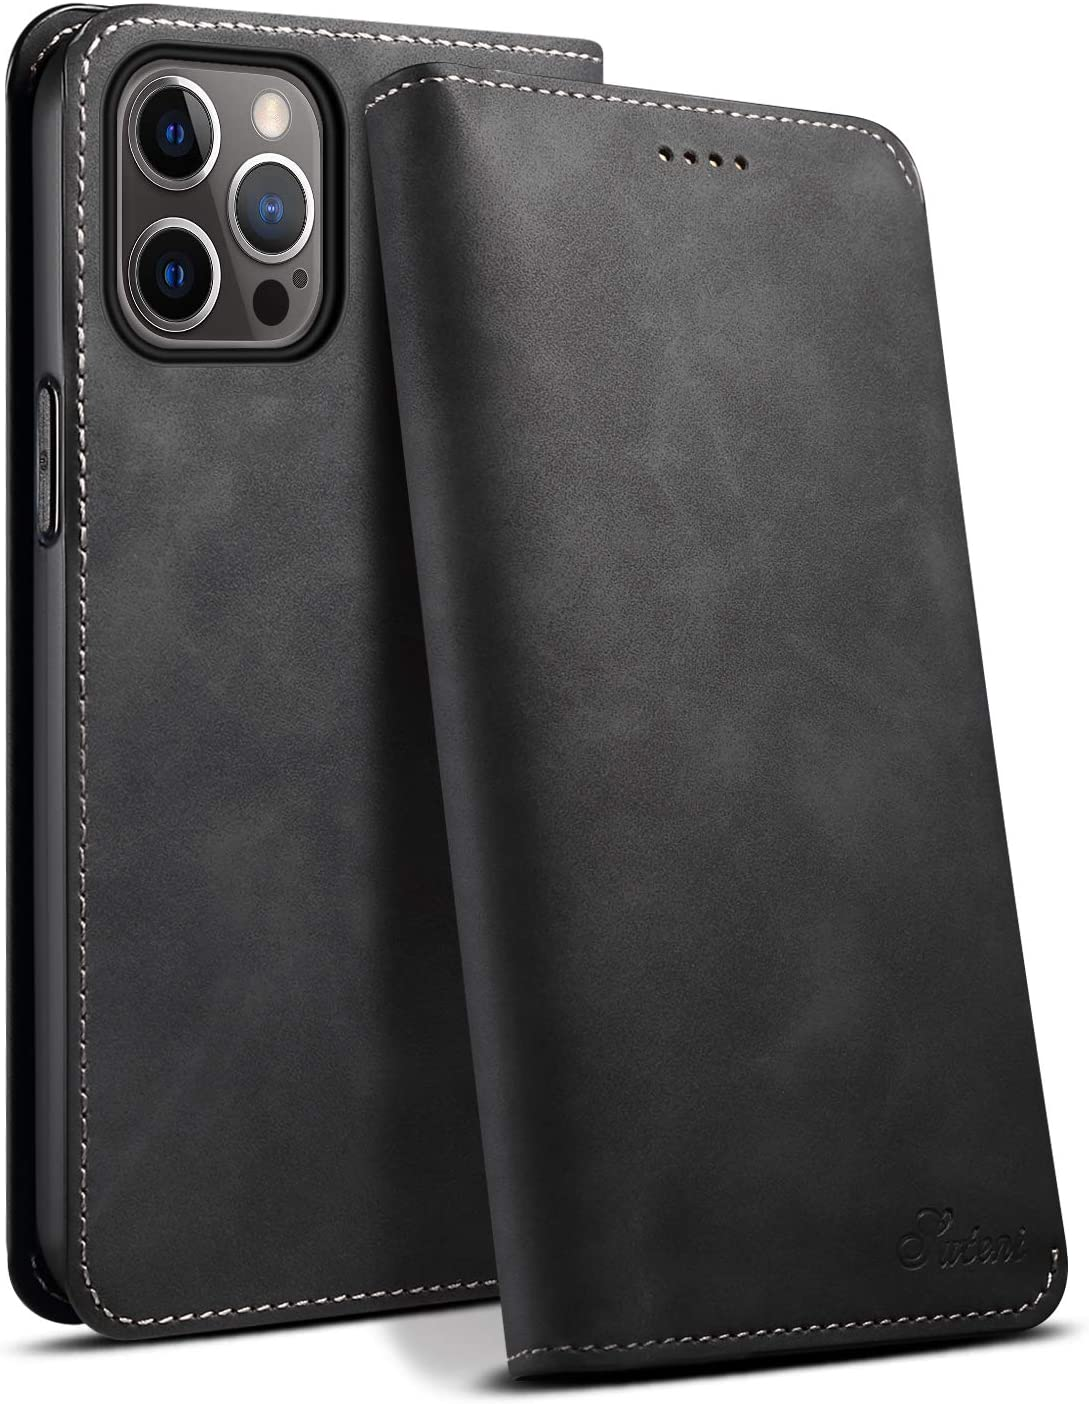 Case for iPhone 12 Pro Max 5G 6.7 2020 PU Leather Card Black Soft Fold Protective Light Folio Fashion Shockproof Fold Cover Shell for Women Men